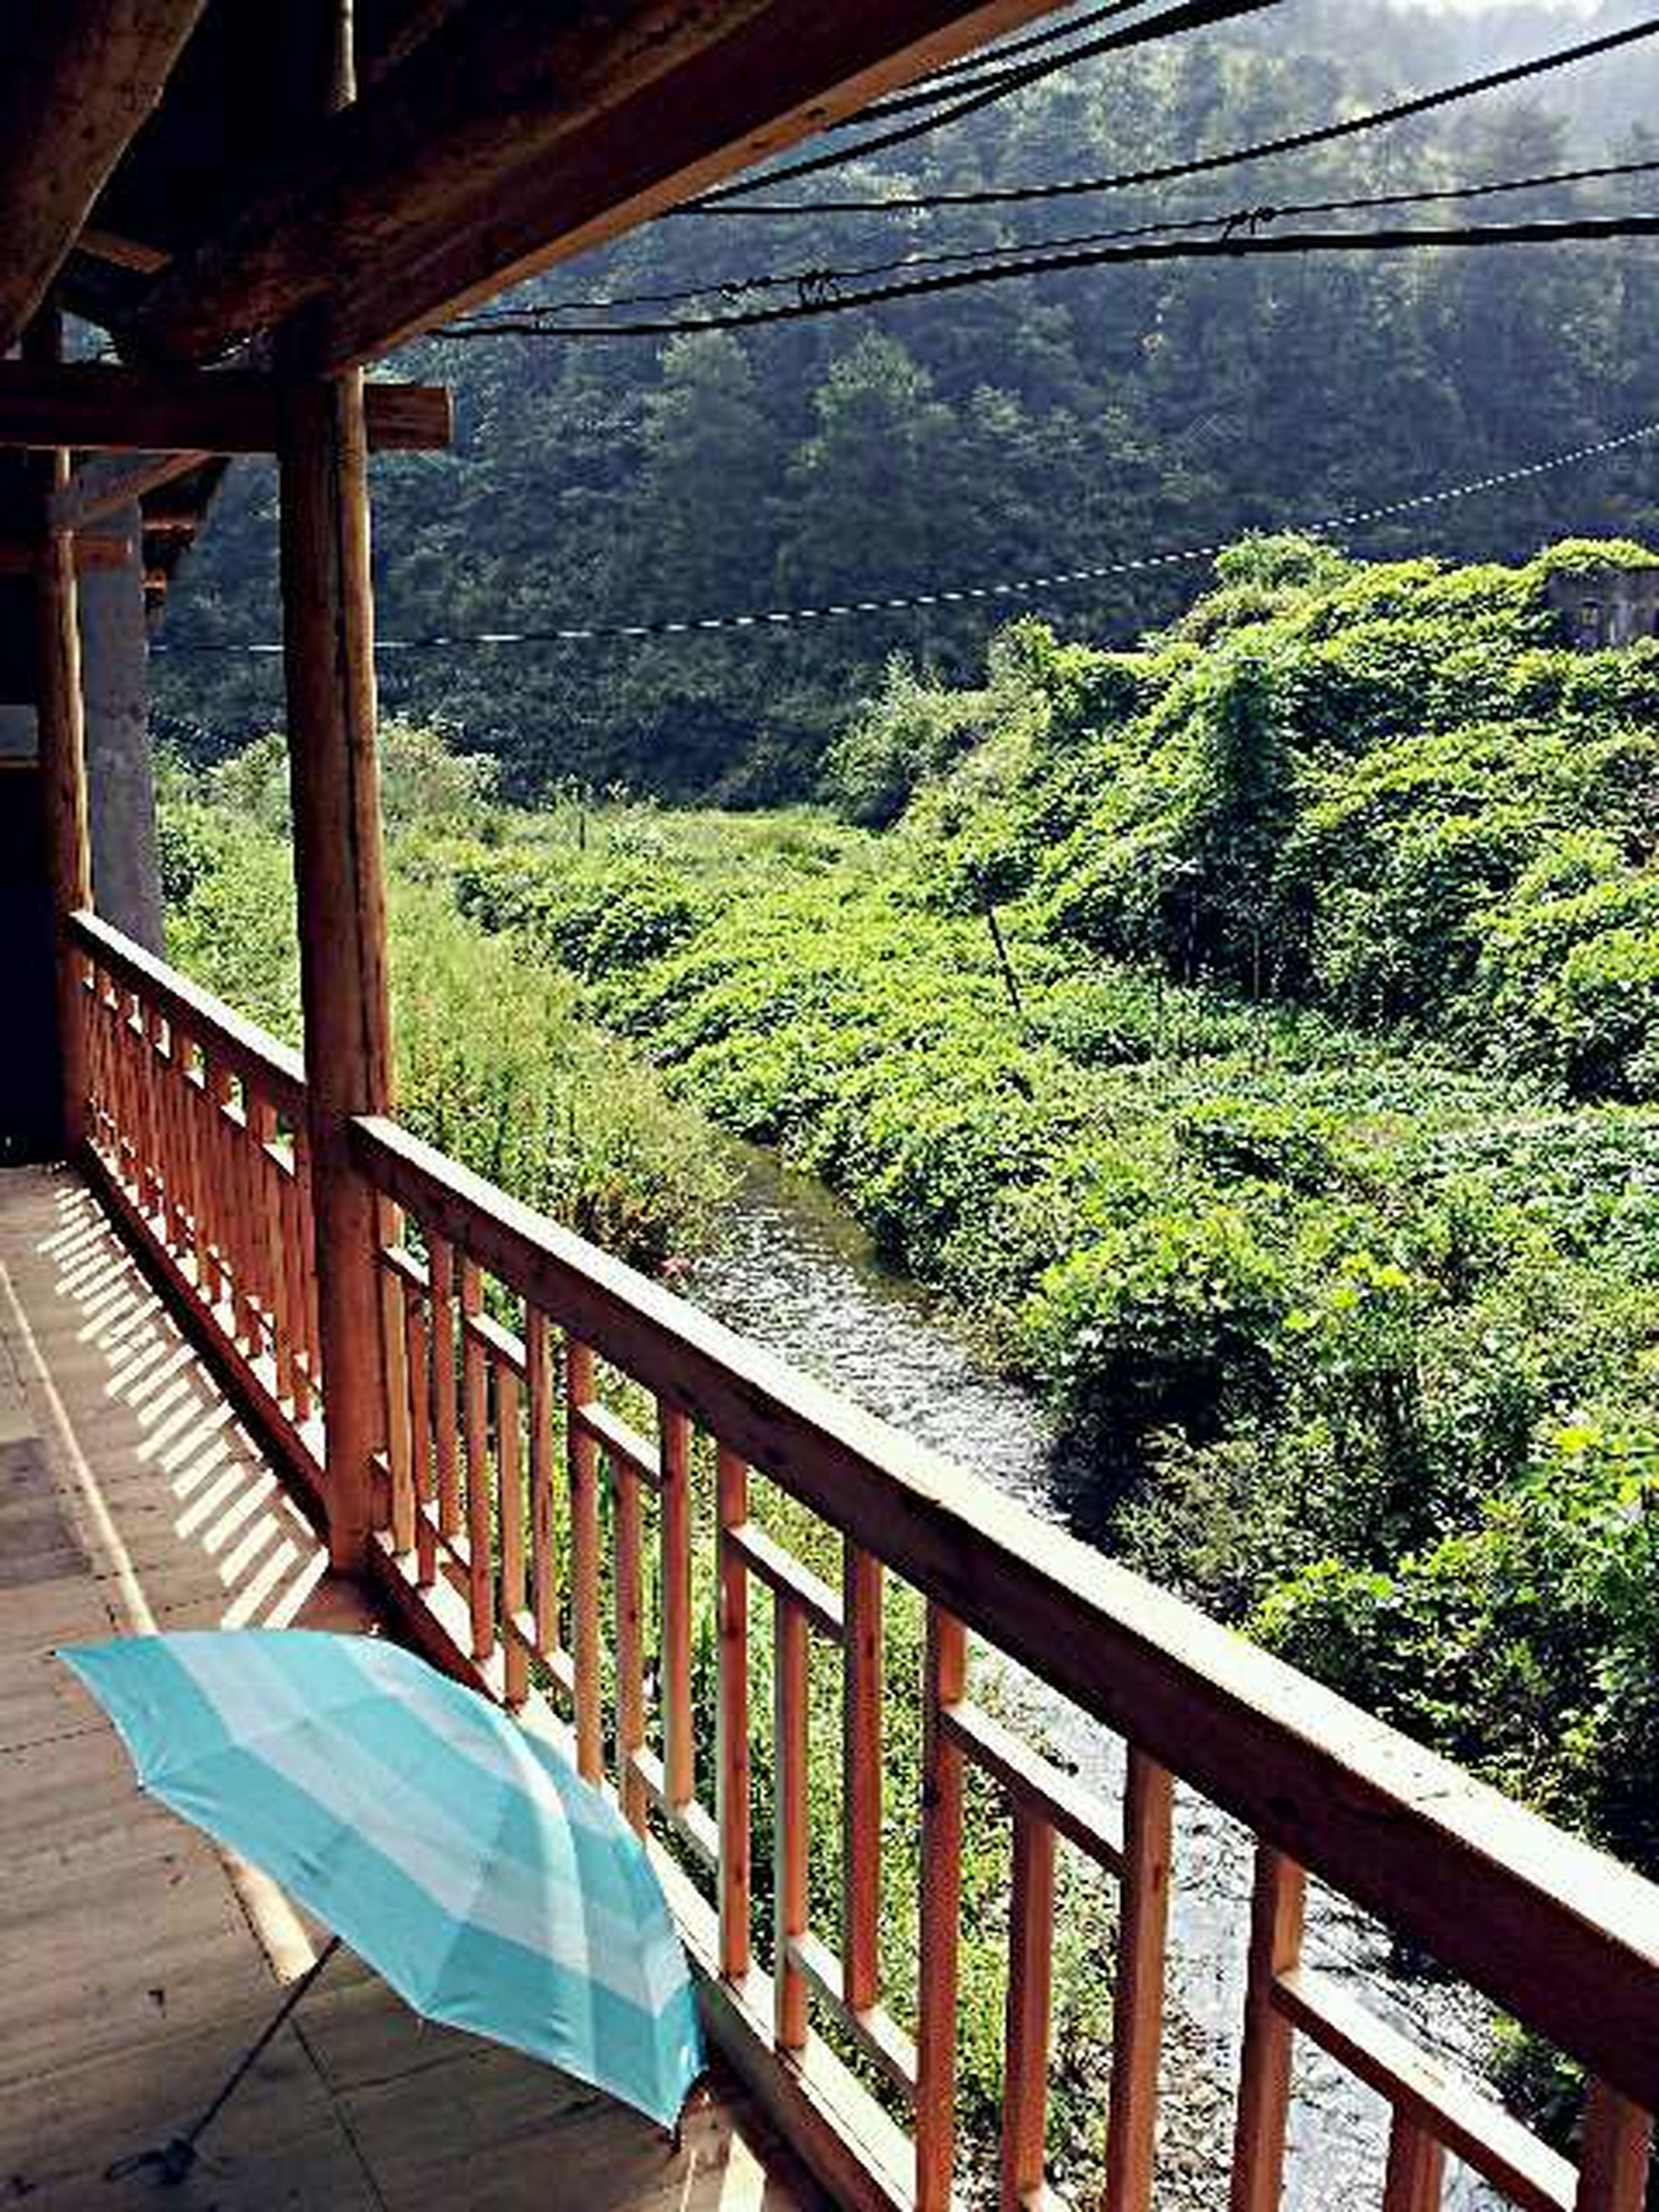 railing, water, tranquility, green color, nature, tranquil scene, tree, beauty in nature, connection, mountain, growth, scenics, high angle view, plant, day, sky, no people, built structure, bridge, bridge - man made structure